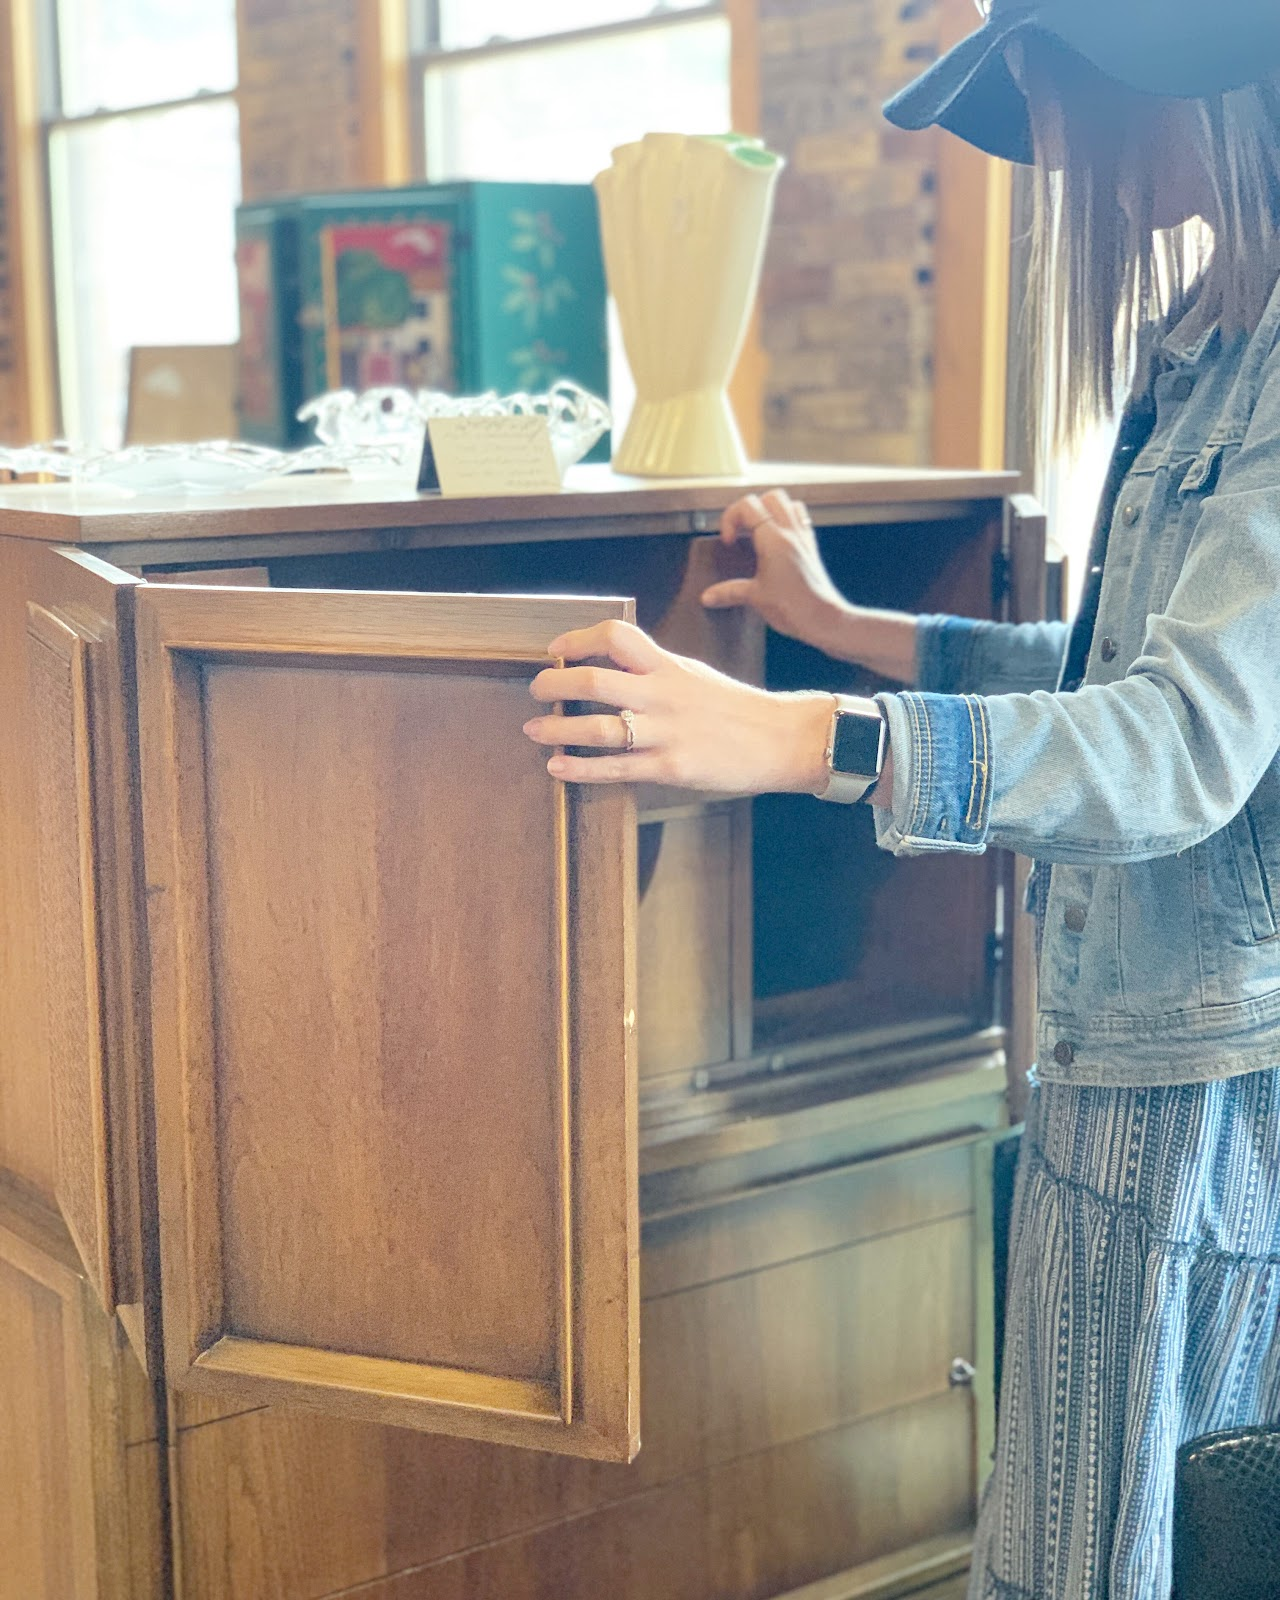 Woman looking for eco-friendly furniture at a second hand store.